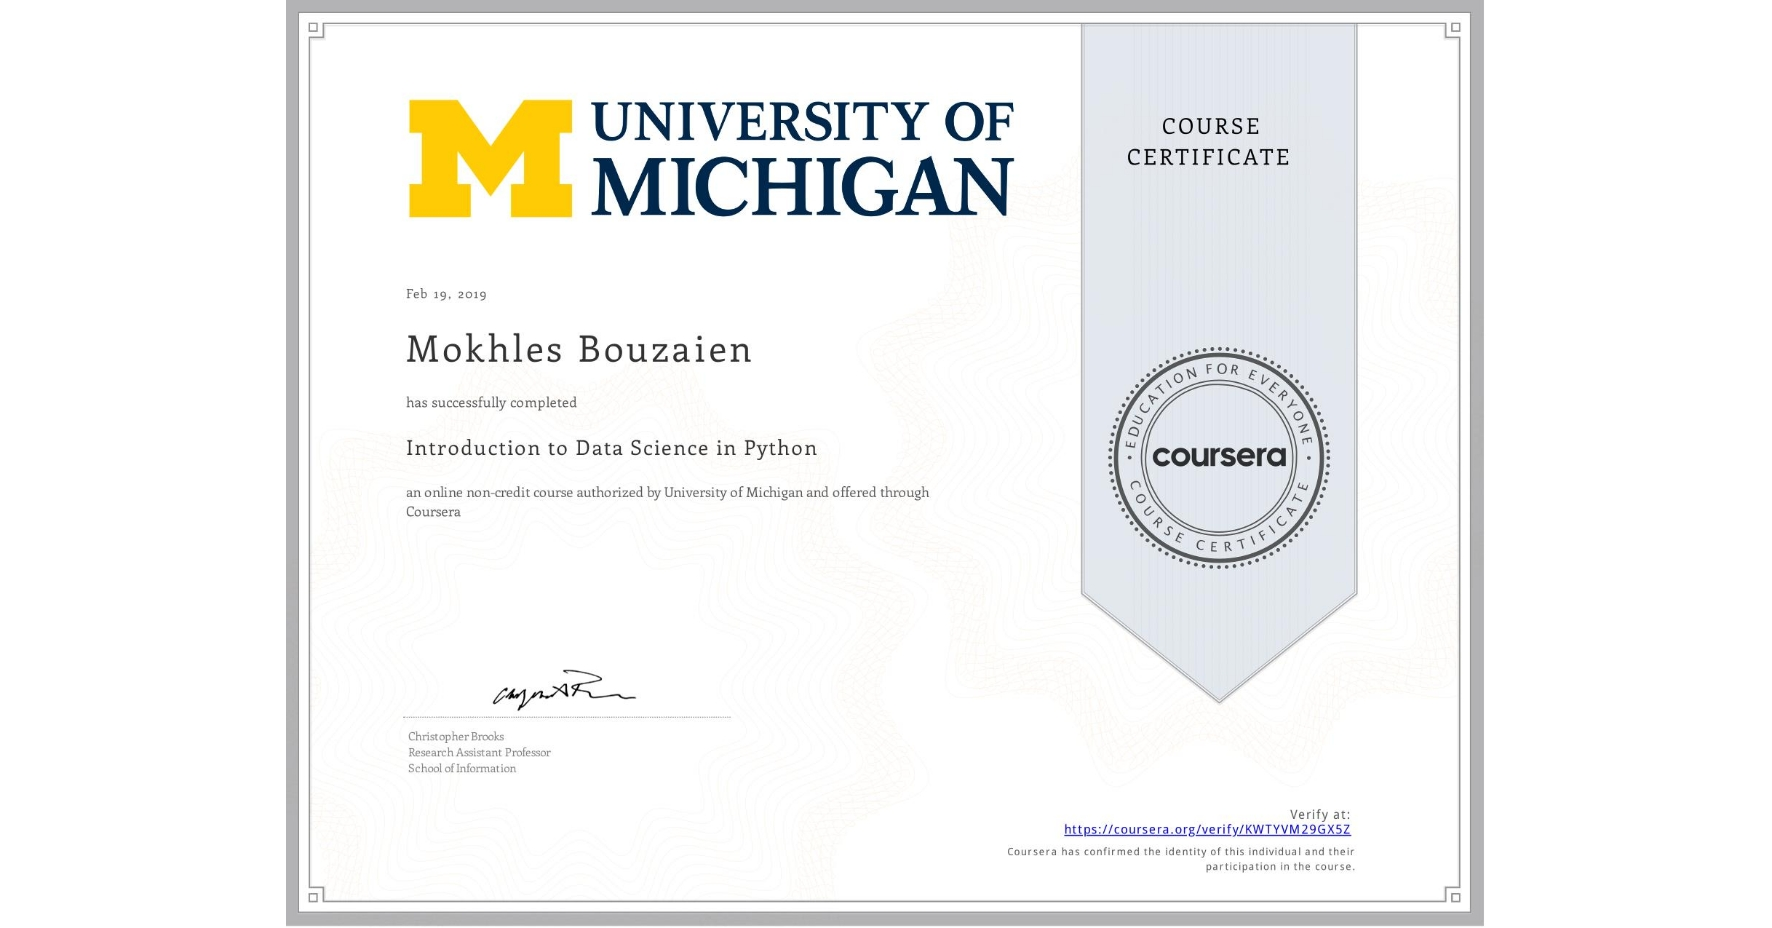 View certificate for Mokhles Bouzaien, Introduction to Data Science in Python, an online non-credit course authorized by University of Michigan and offered through Coursera